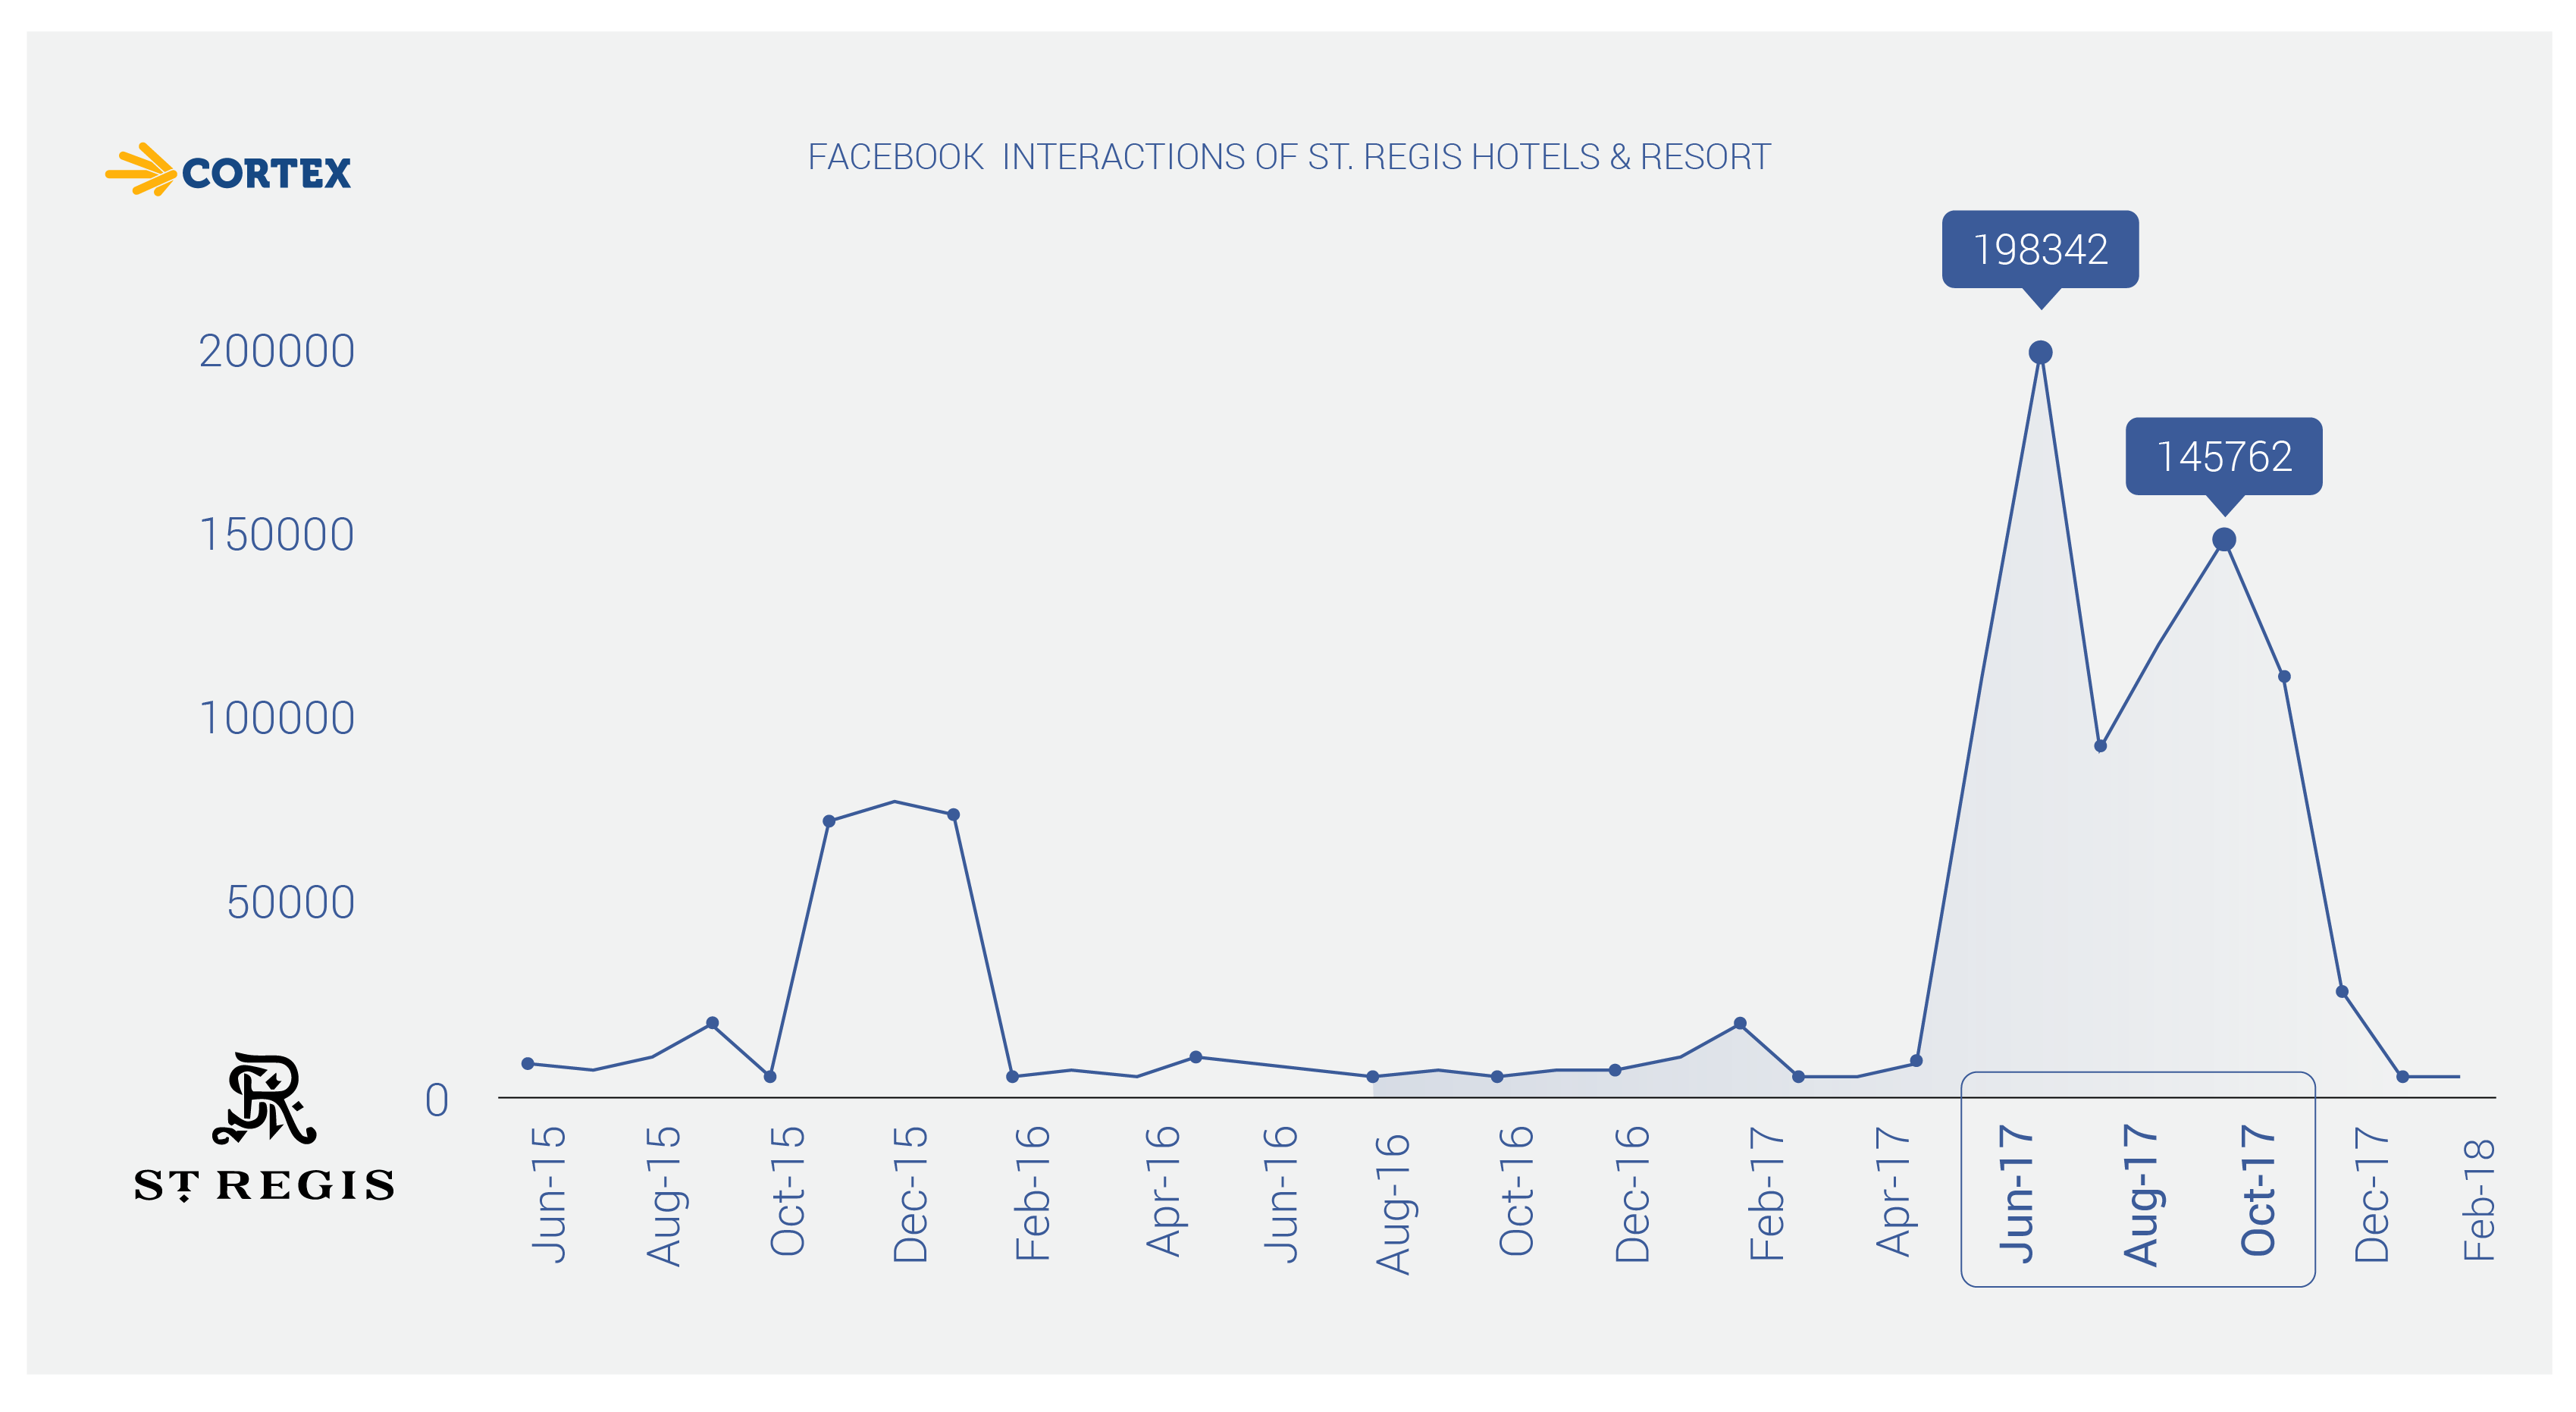 St Regis Hotel Facebook Interactions